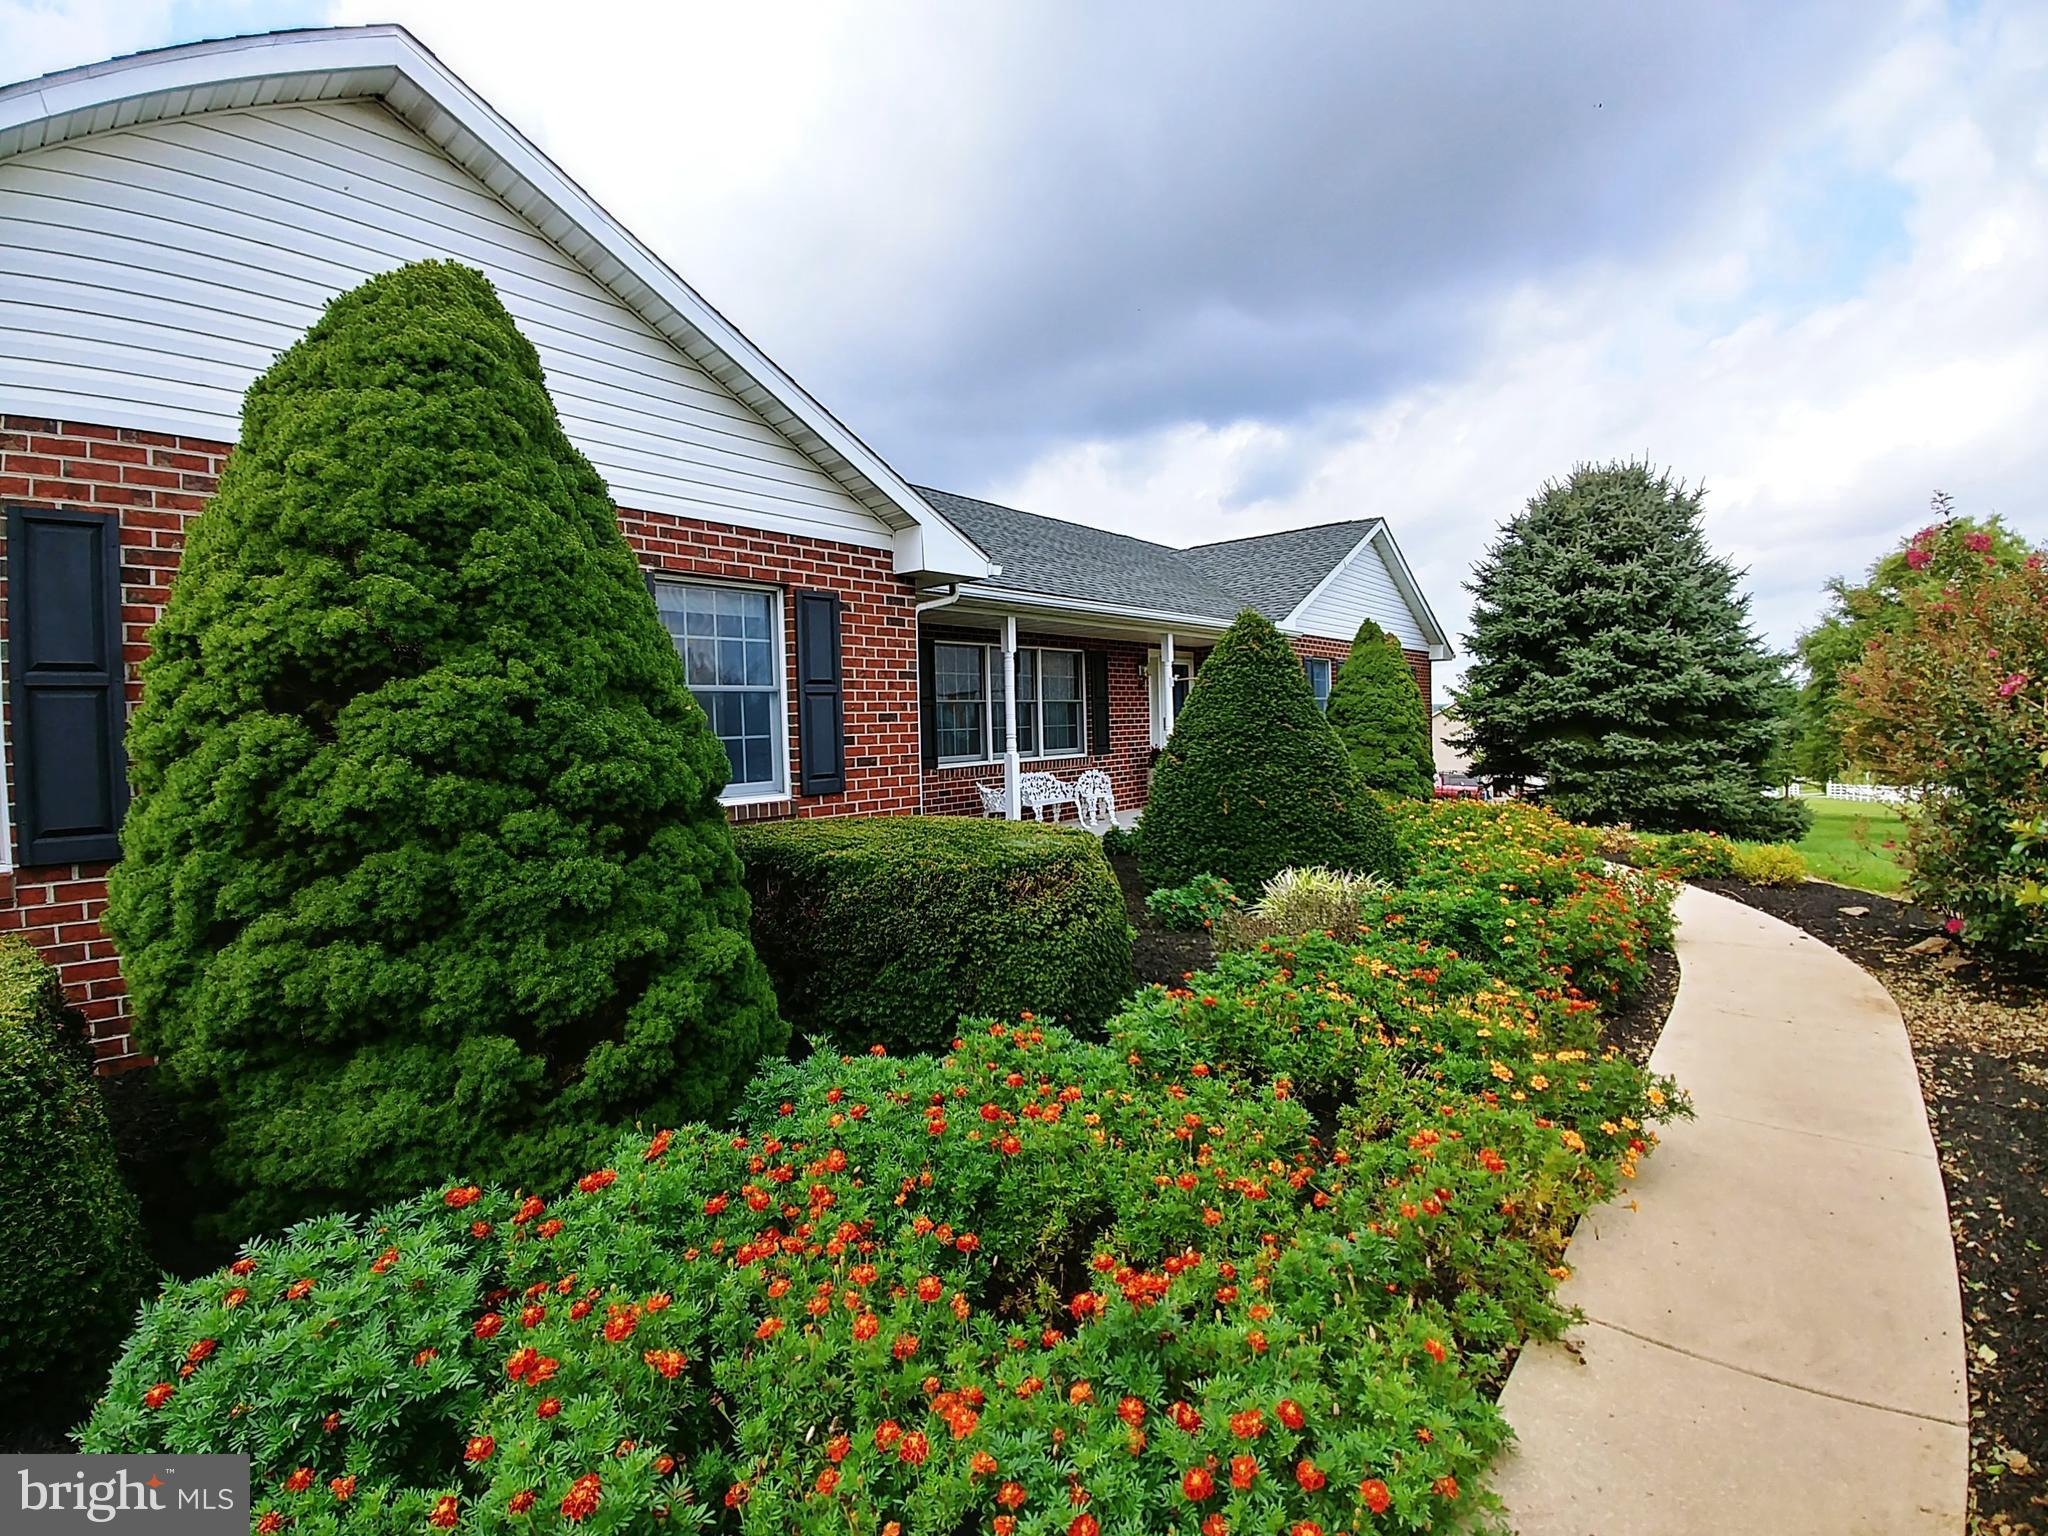 446 THRONE ROAD, FAWN GROVE, PA 17321